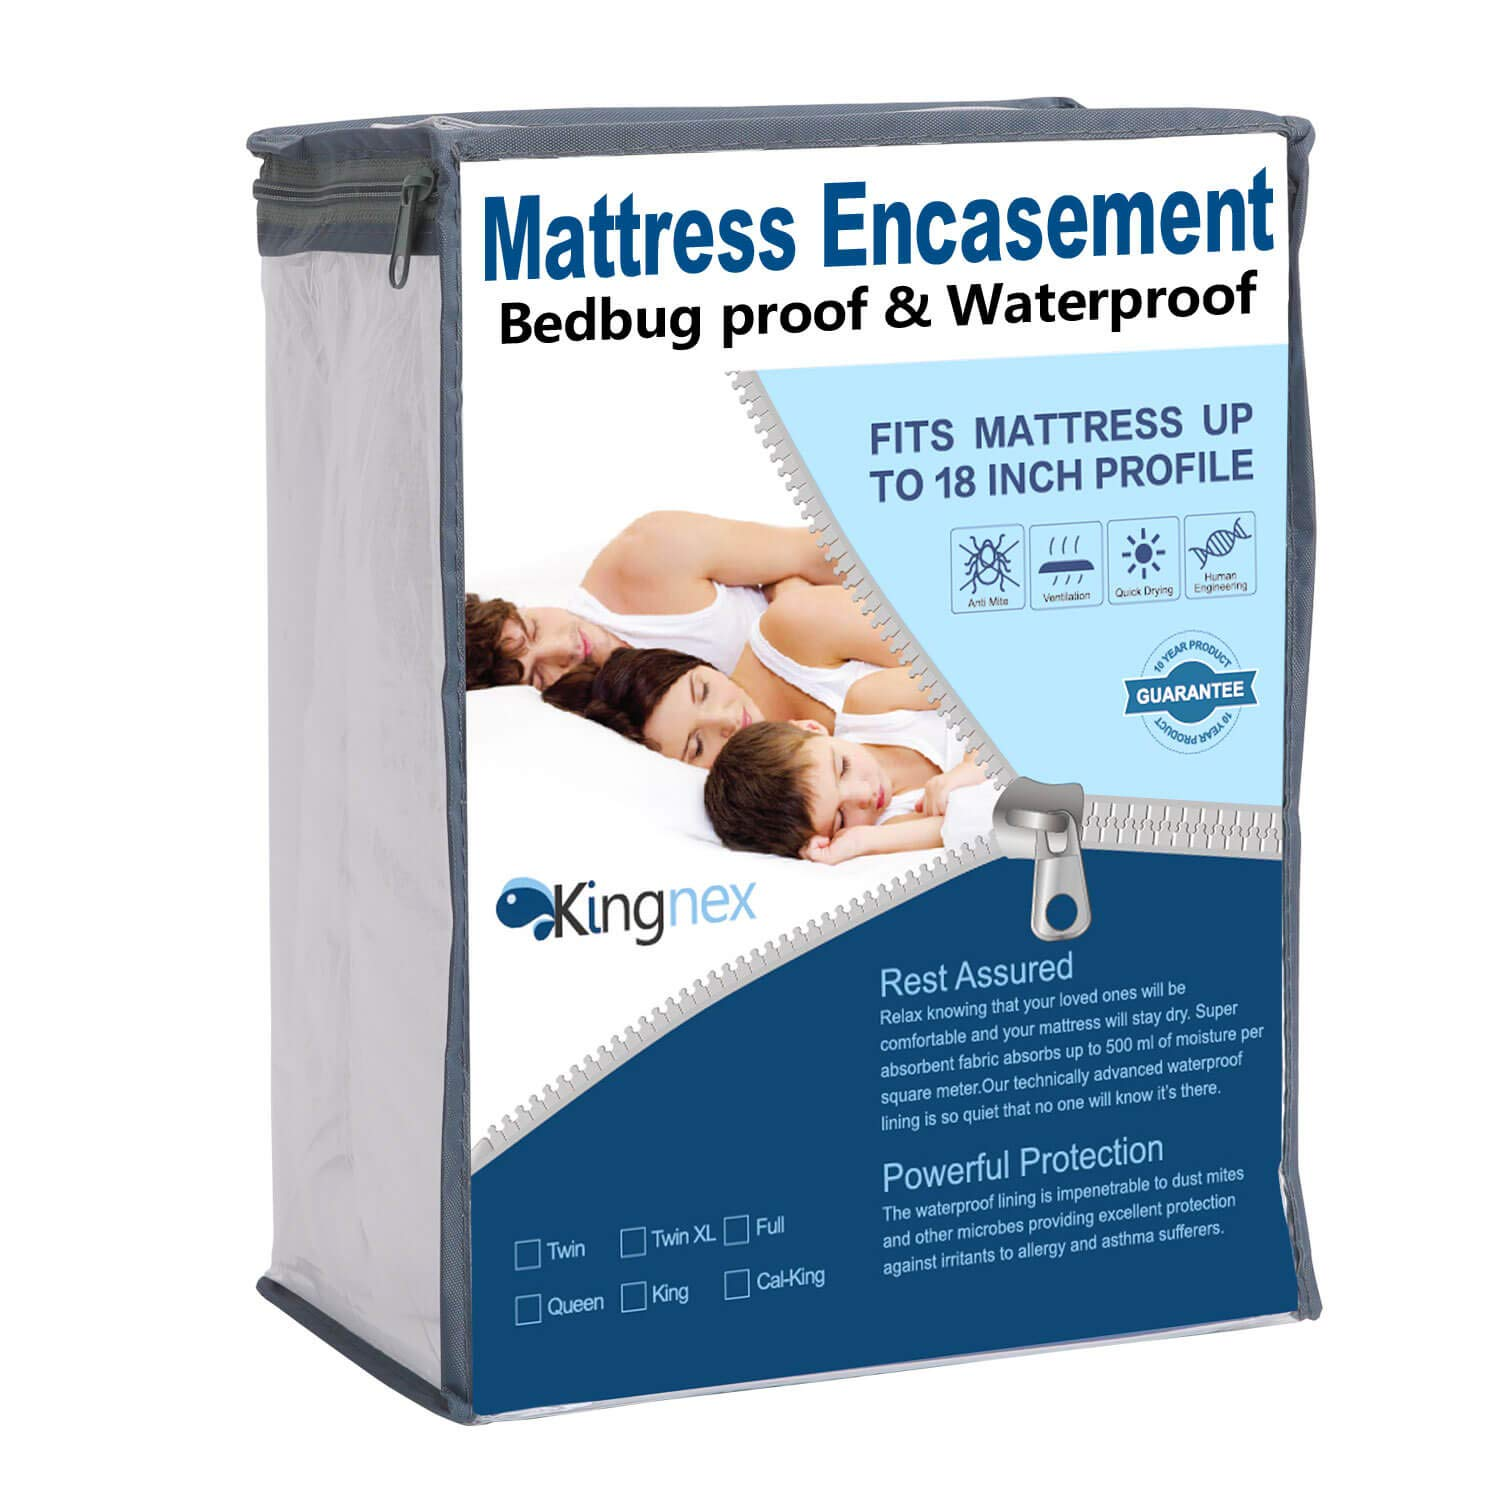 Kingnex Zippered Mattress Protector - Waterproof Mattress Encasement - Proof Hypoallergenic Breathable 6 Side Fully Encased Cover King Size